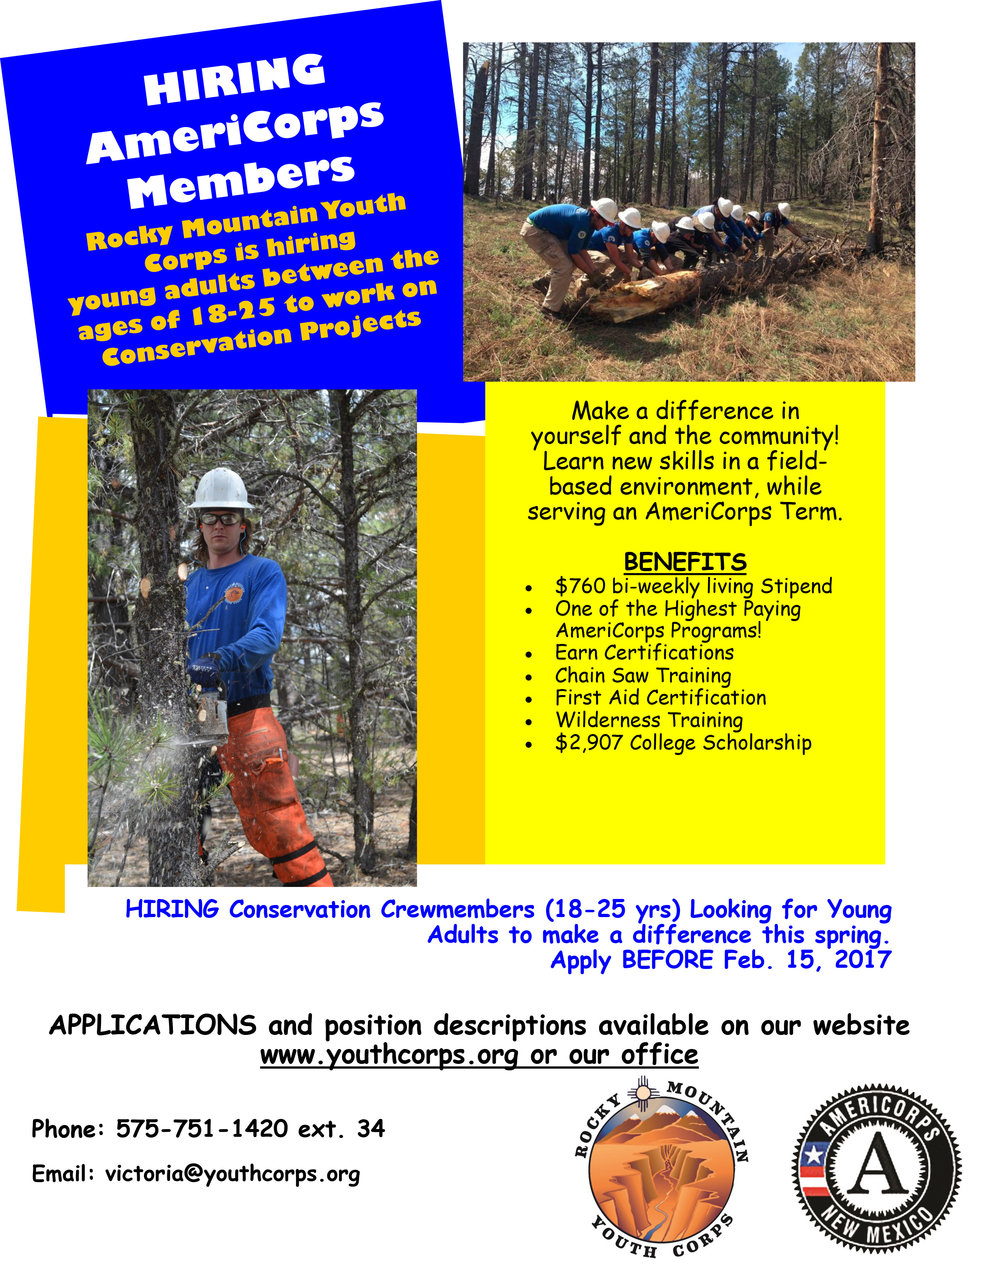 Position Summary: Join an AmeriCorps crew working on conservation projects throughout the Upper Rio Grande region of New Mexico. These crews will be Camping positions; applicants must be available for overnights up to 8 days.  Position Purpose: Crews will work to safely complete trail maintenance and/or forestry/fuels reduction (chainsaw thinning) projects. Additional projects may include historic preservation, disaster relief, watershed restoration or other community improvement work. All Corpsmembers will receive both personal and professional development training in topics such as First Aid/CPR, financial management, and public speaking skills.  Location: This position is based in Taos, New Mexico. Our office is located at 1203 King Drive. Participants must have reliable transportation to and from this location, according to their work schedule   LEARN MORE & APPLY